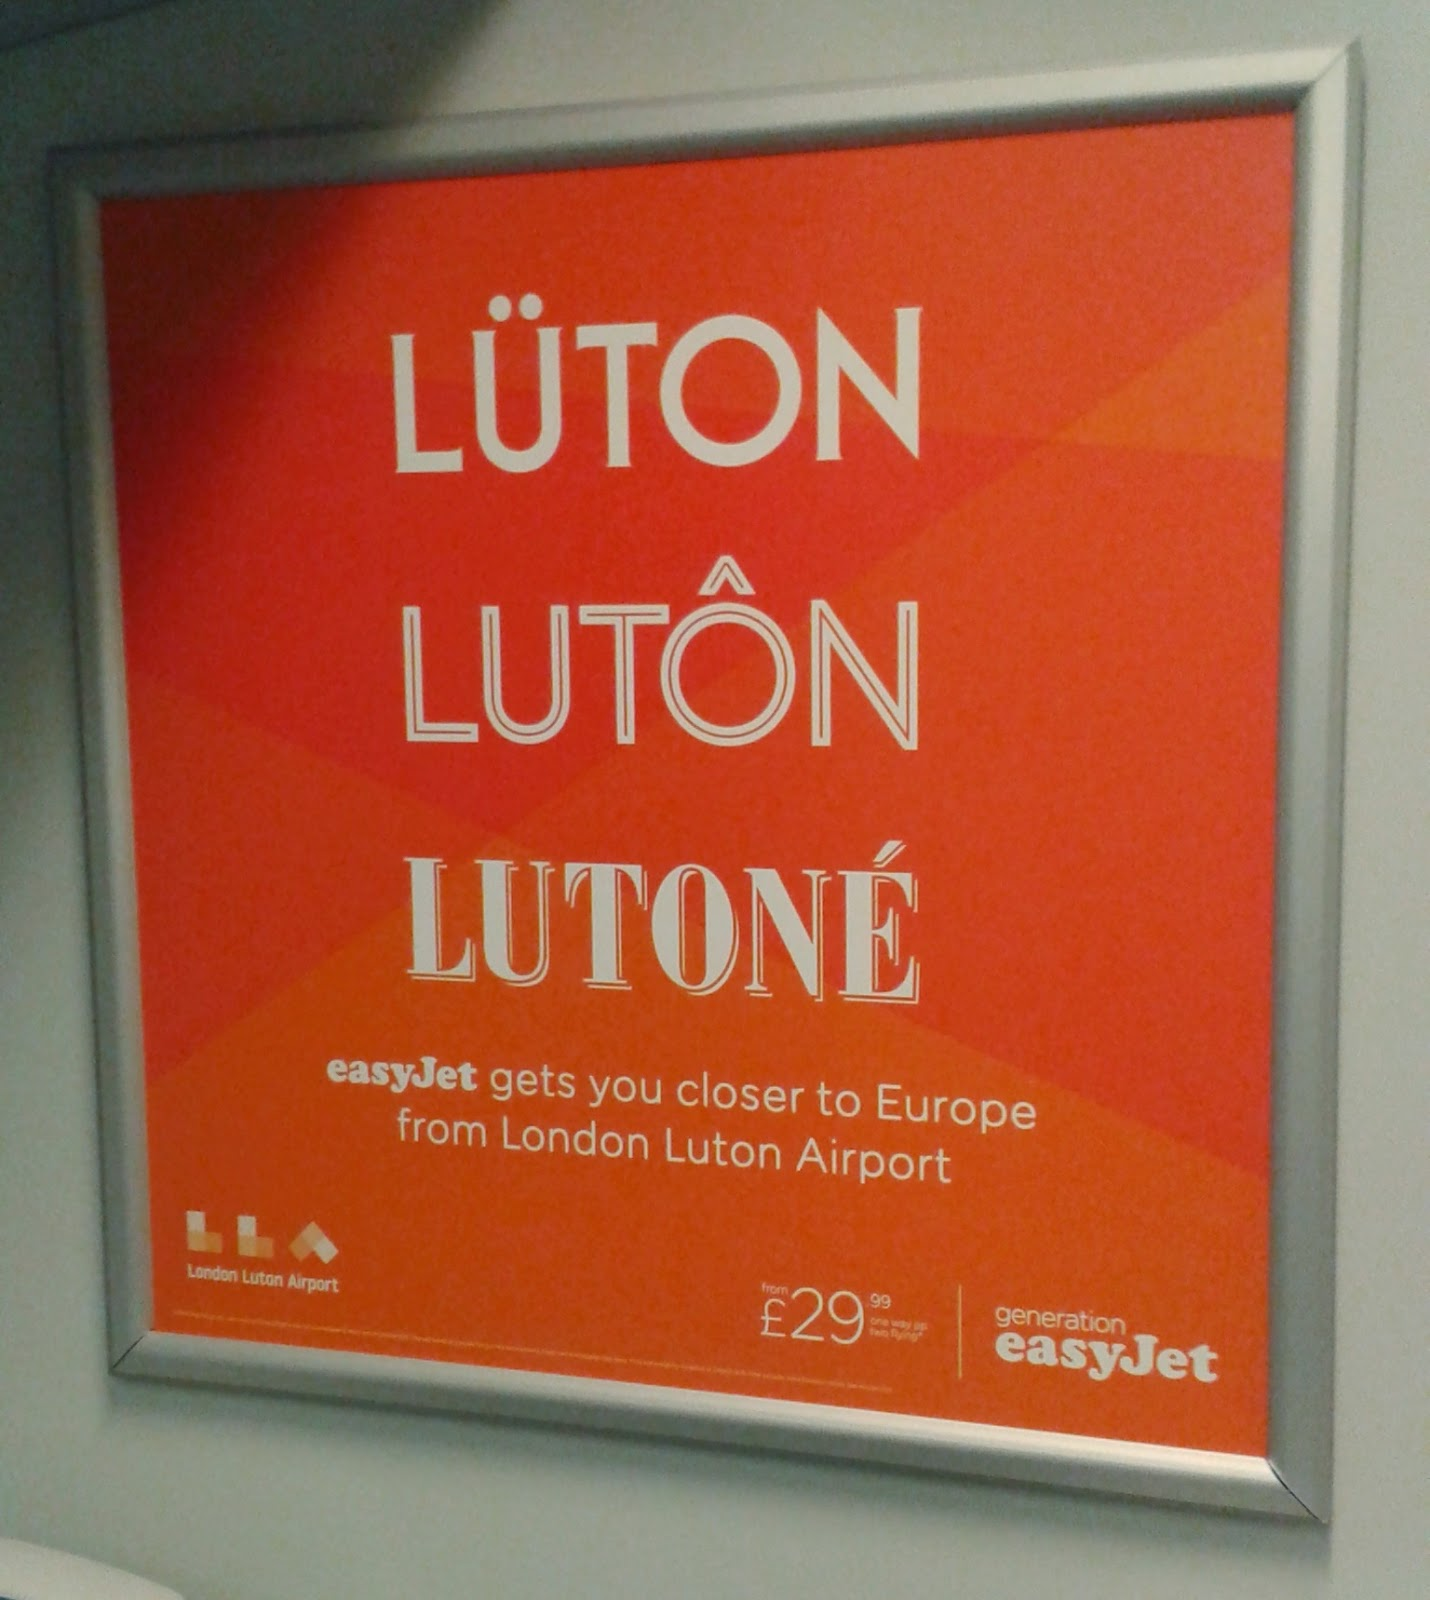 Luton - otherwise known as Lüton, Lutôn and Lutoné